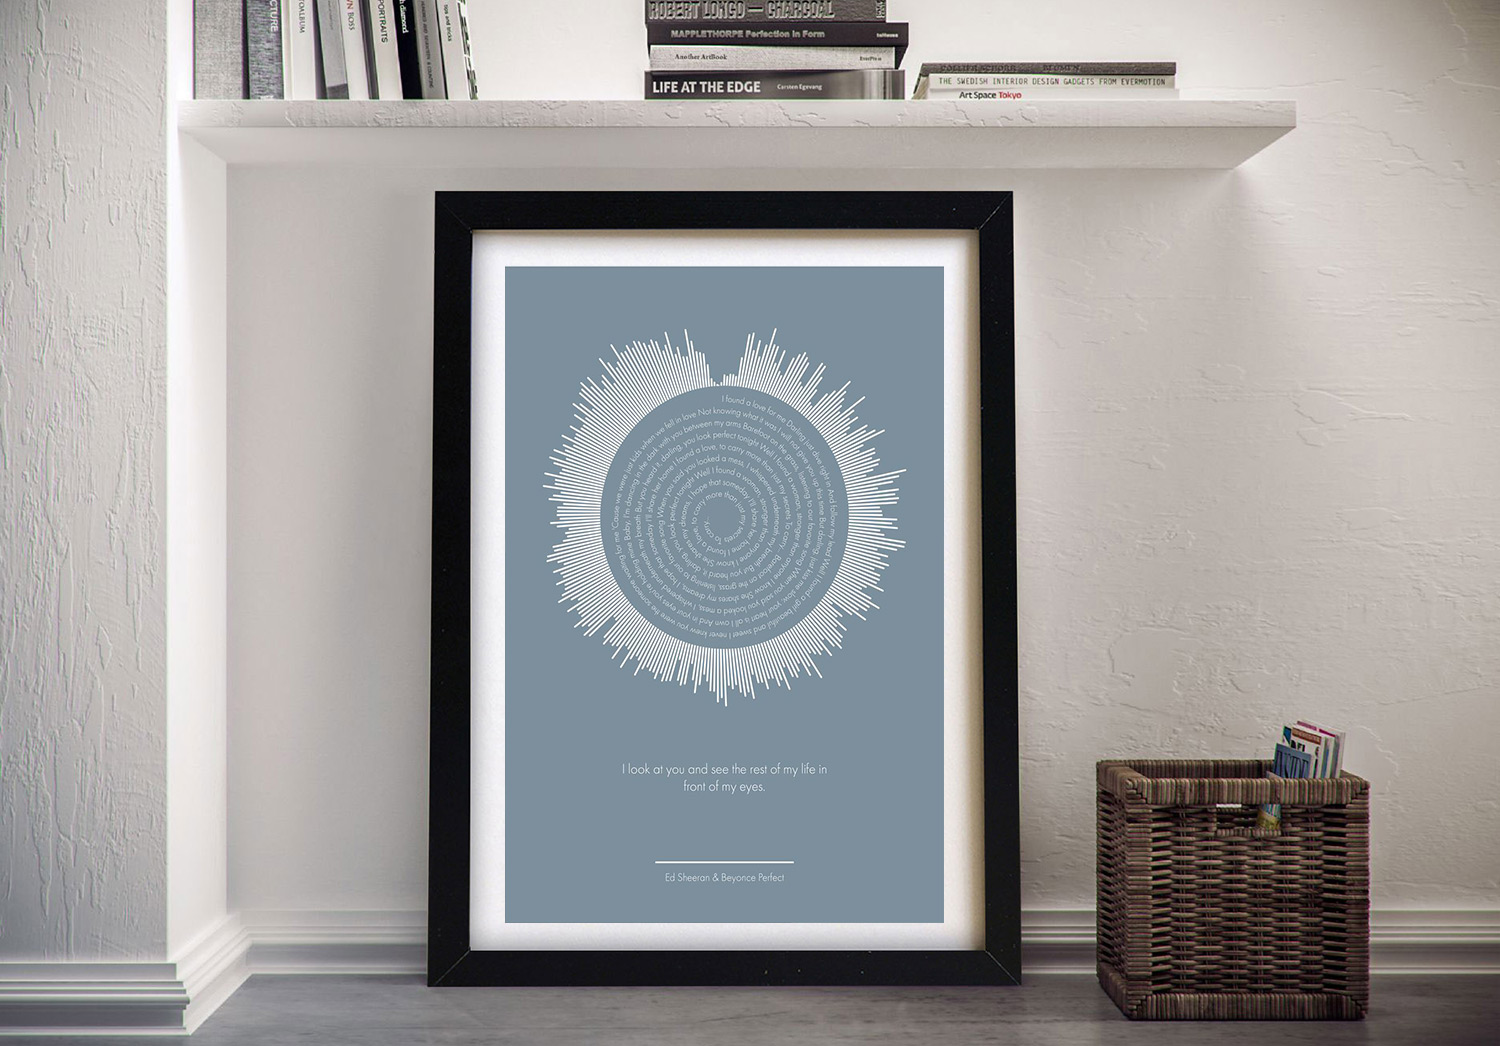 Rolling Sound Framed Wall Art | Rolling Sound